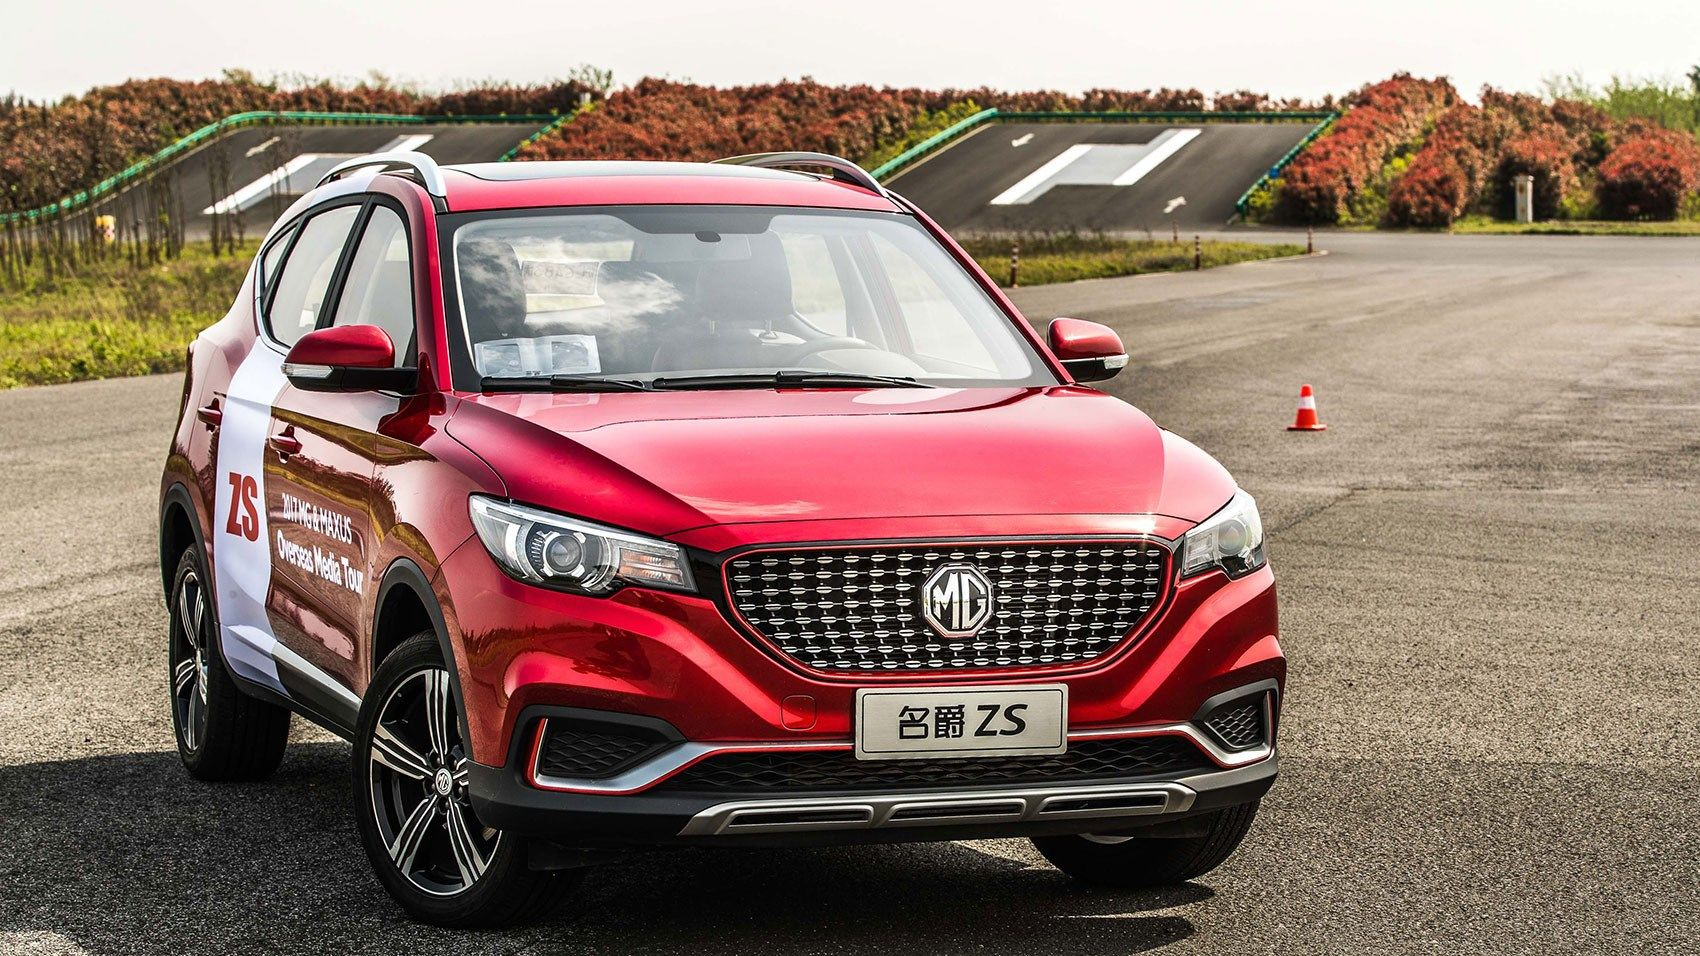 Mg Zs My Way With A Panoramic Sunroof Luxurious Front Grille Led Drl Headlights 3d Audio And Top Spec Features The Mg Zs Cool Sports Cars Compact Suv Suv